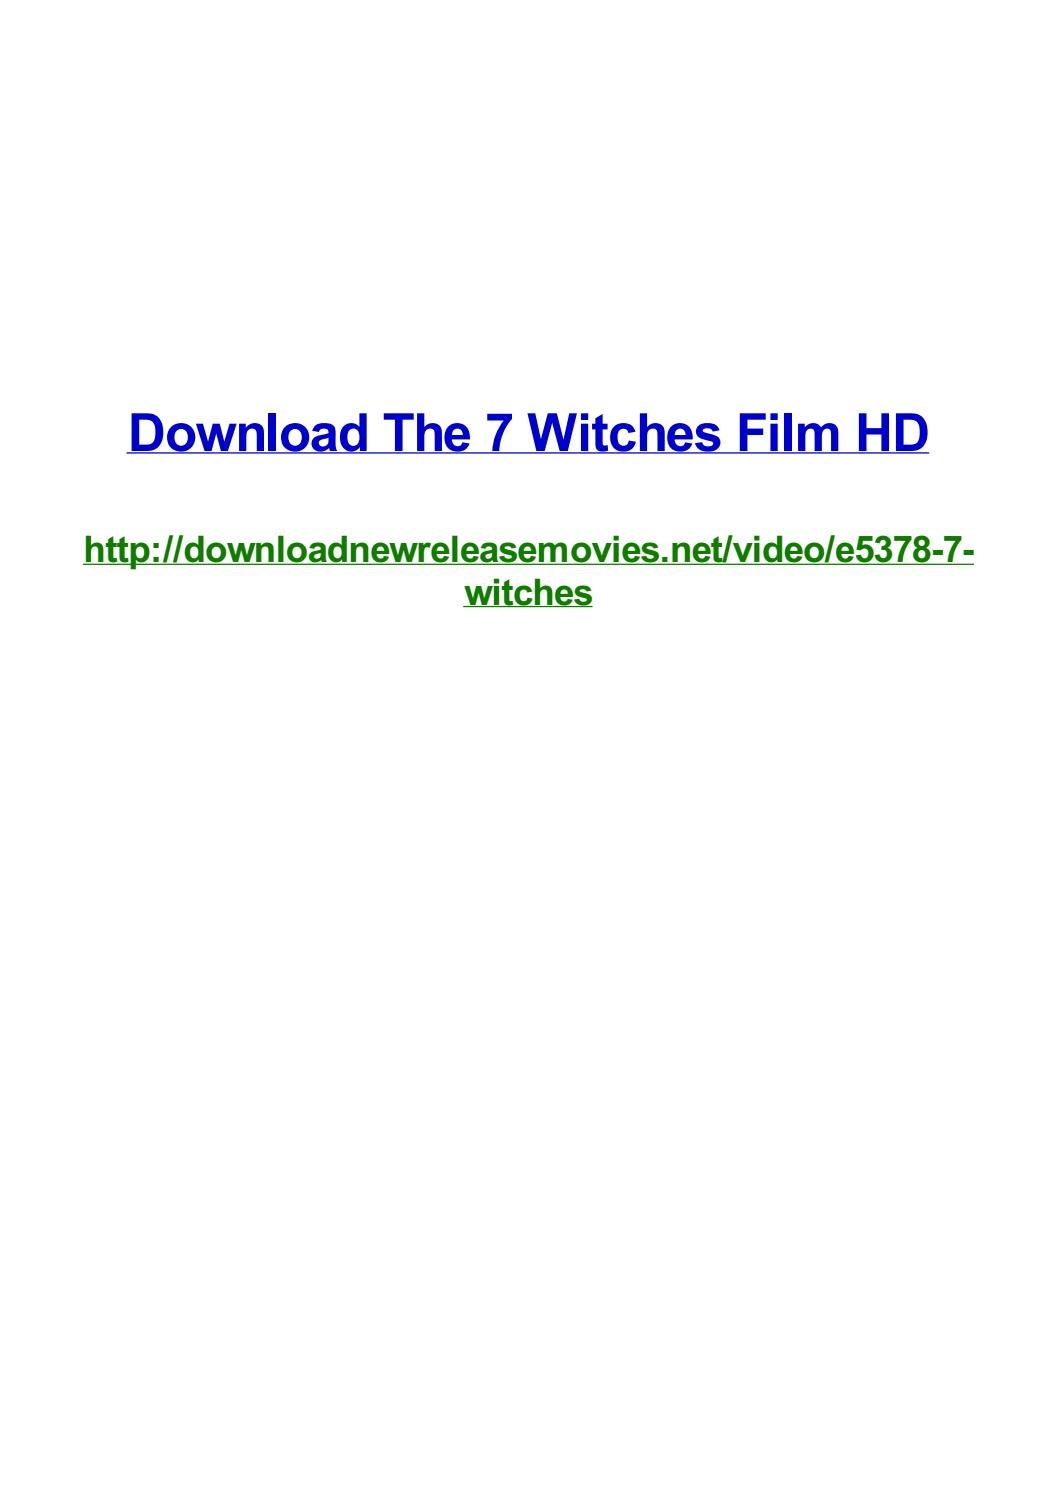 Download The 7 Witches Film Hd By Frank Seamons Issuu